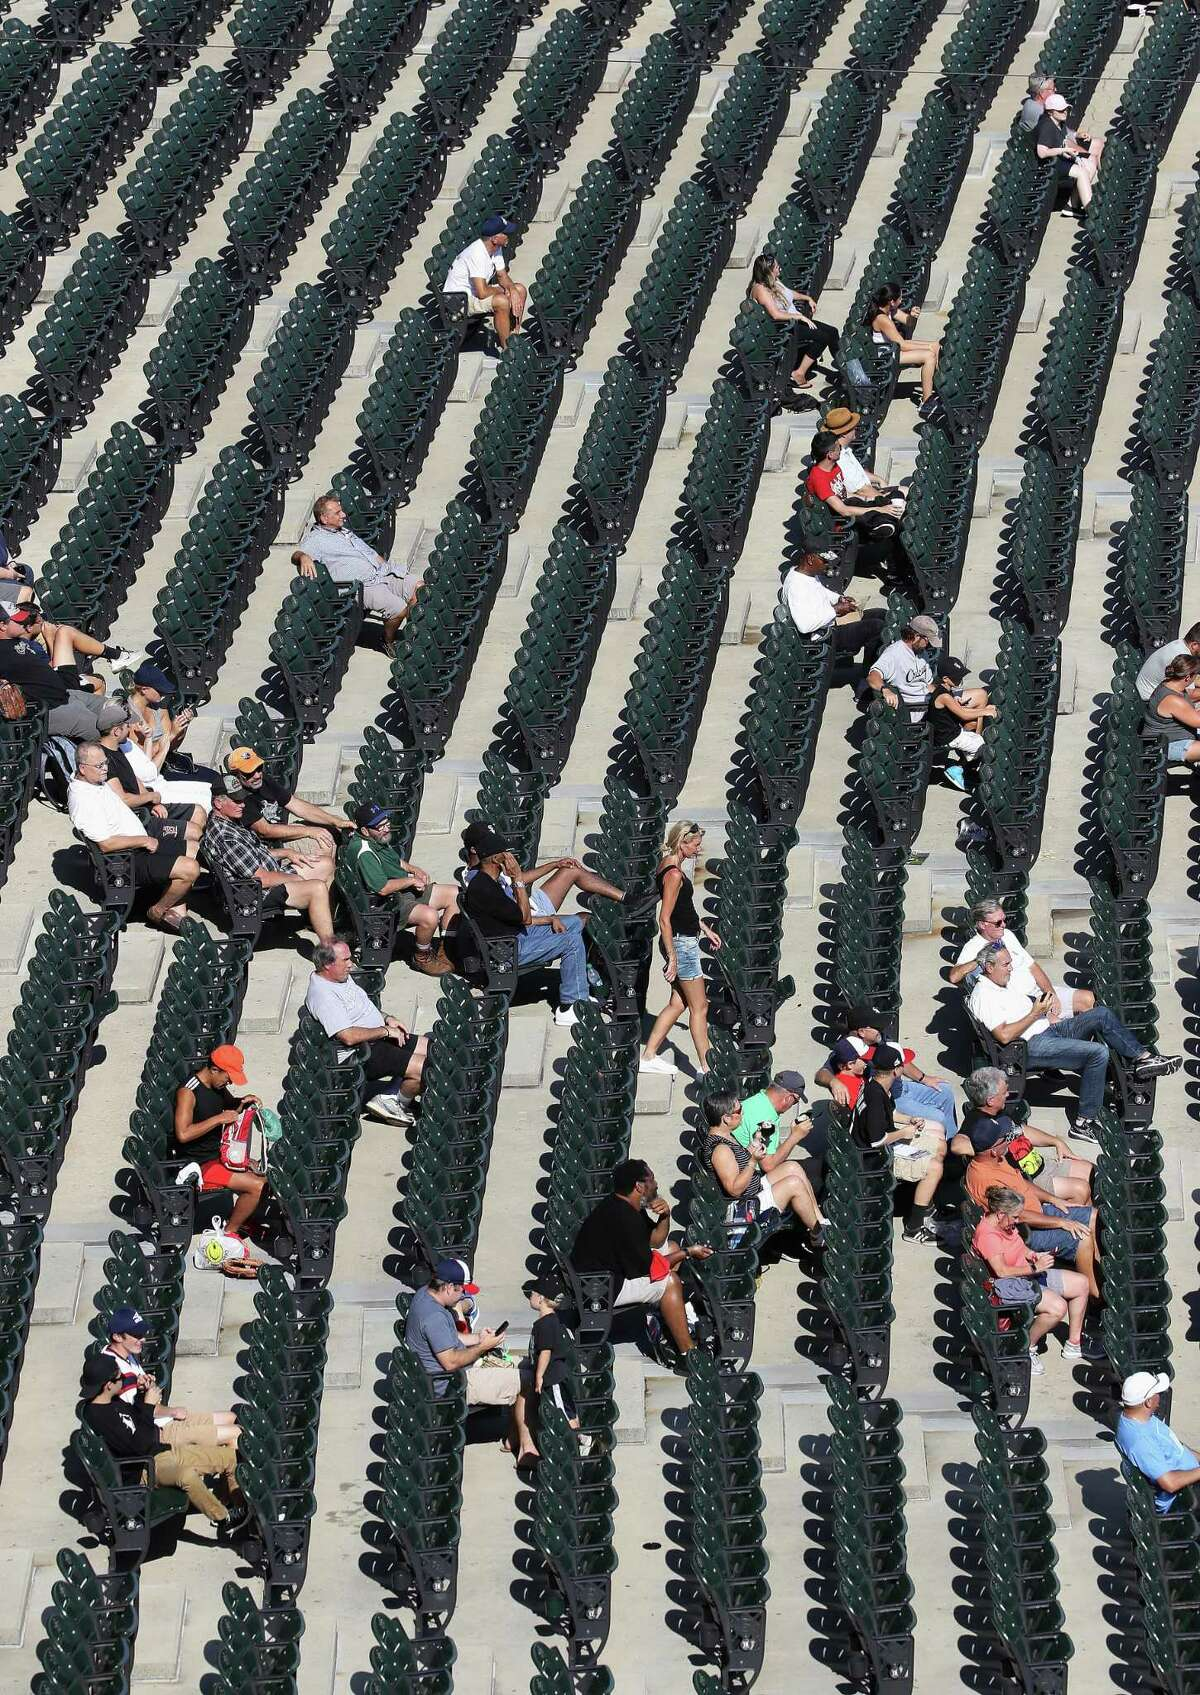 CHICAGO, ILLINOIS - AUGUST 13: A small crowd attends the first game of a double header at Guaranteed Rate Field between the Chicago White Sox and the Houston Astros on August 13, 2019 in Chicago, Illinois. (Photo by Jonathan Daniel/Getty Images)